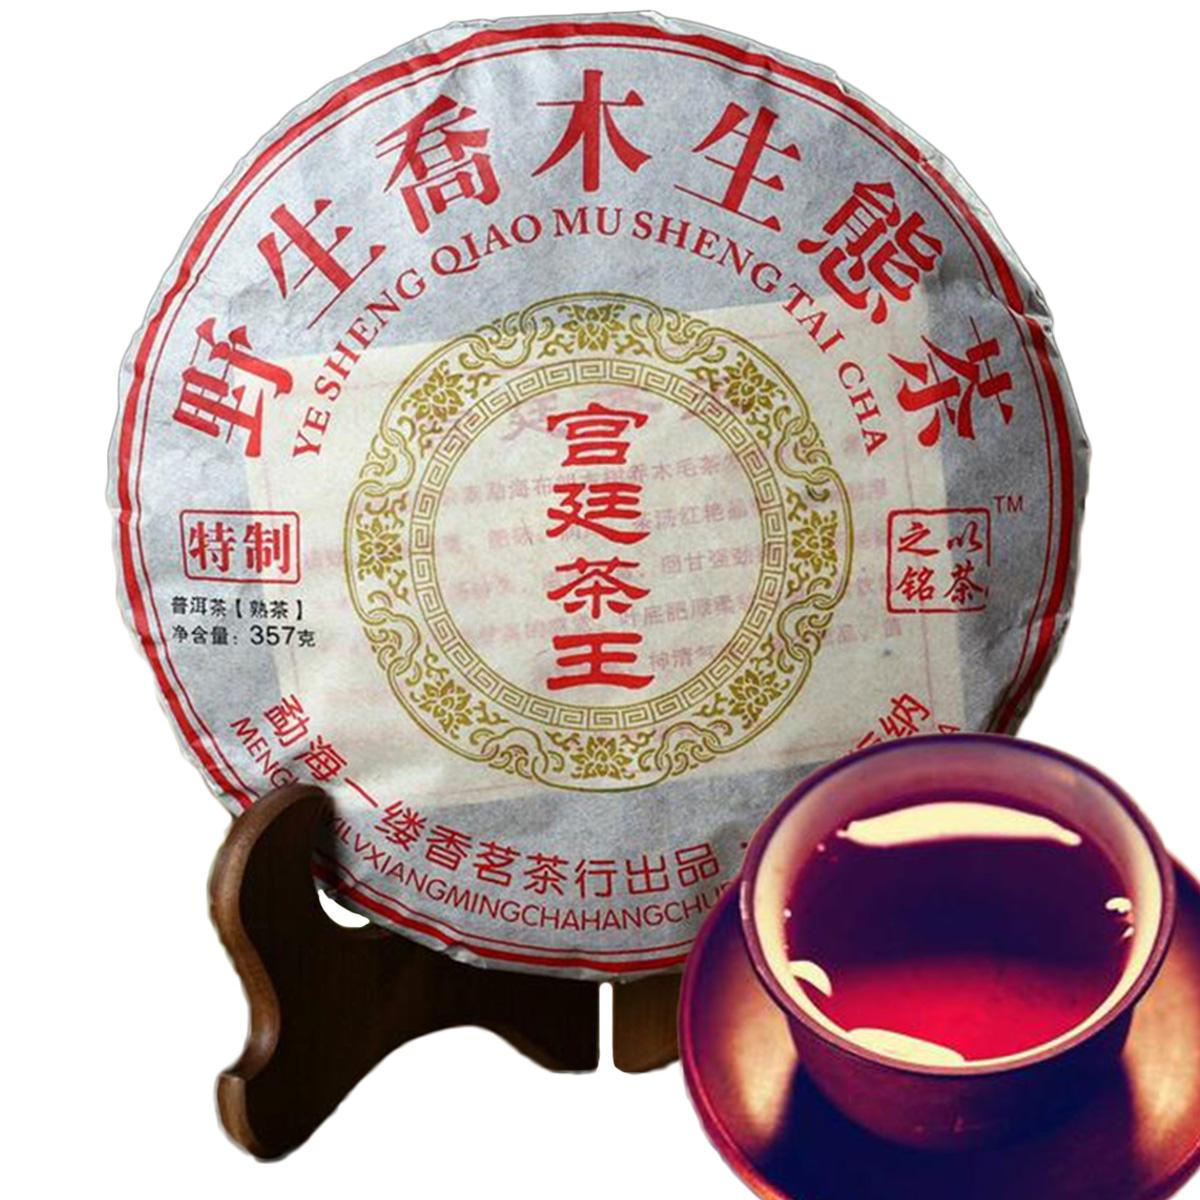 Hot sales 357g Ripe Puer Tea Yunnan Wild Arbor Palace Puer Tea Cake Organic Natural Cooked Pu'er Oldest Tree Black Puer Tea